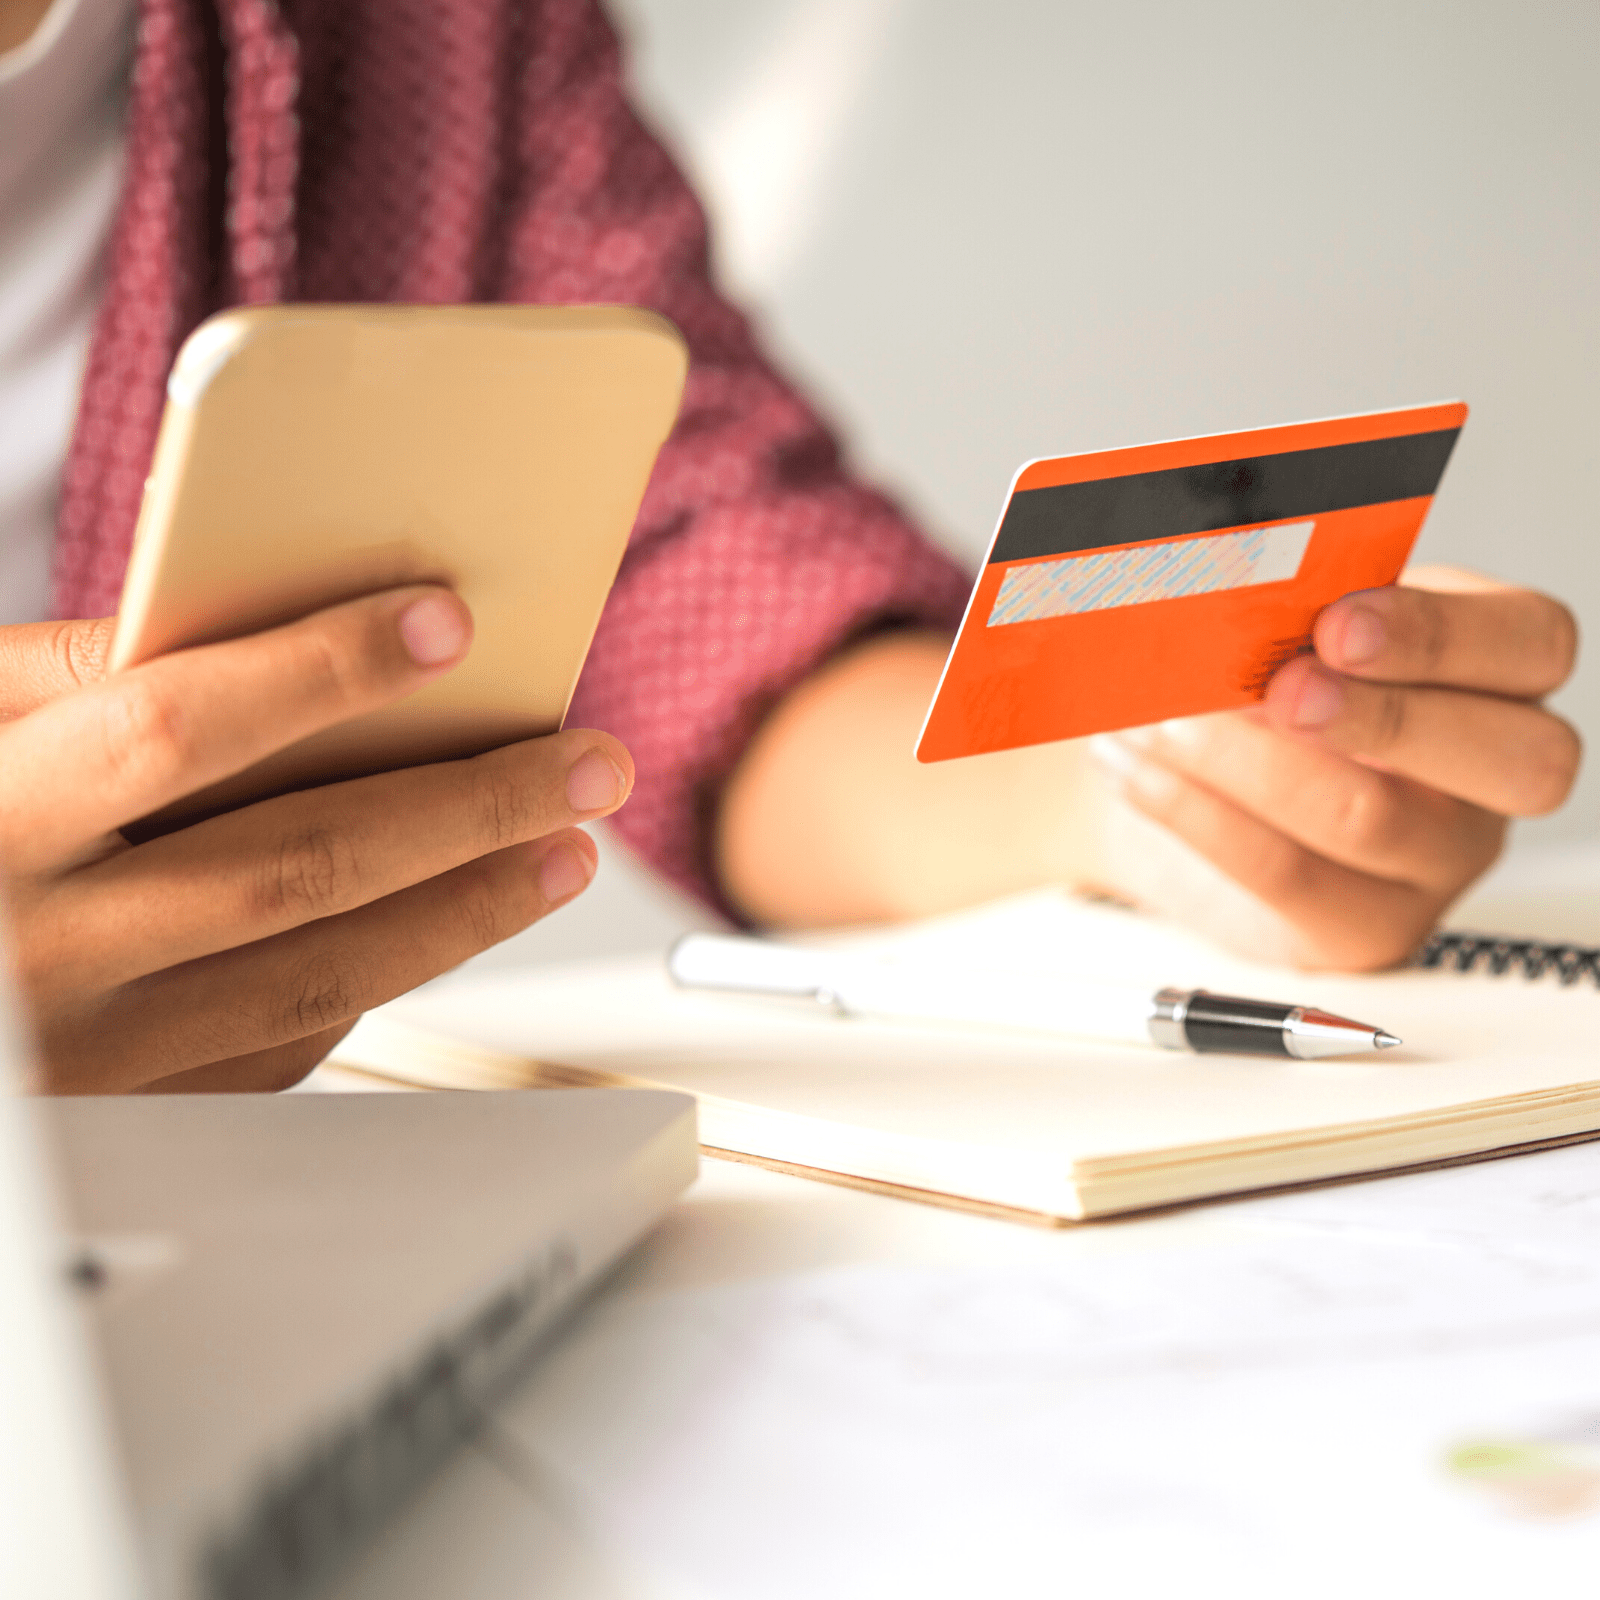 Woman with phone in right hand and credit card in left